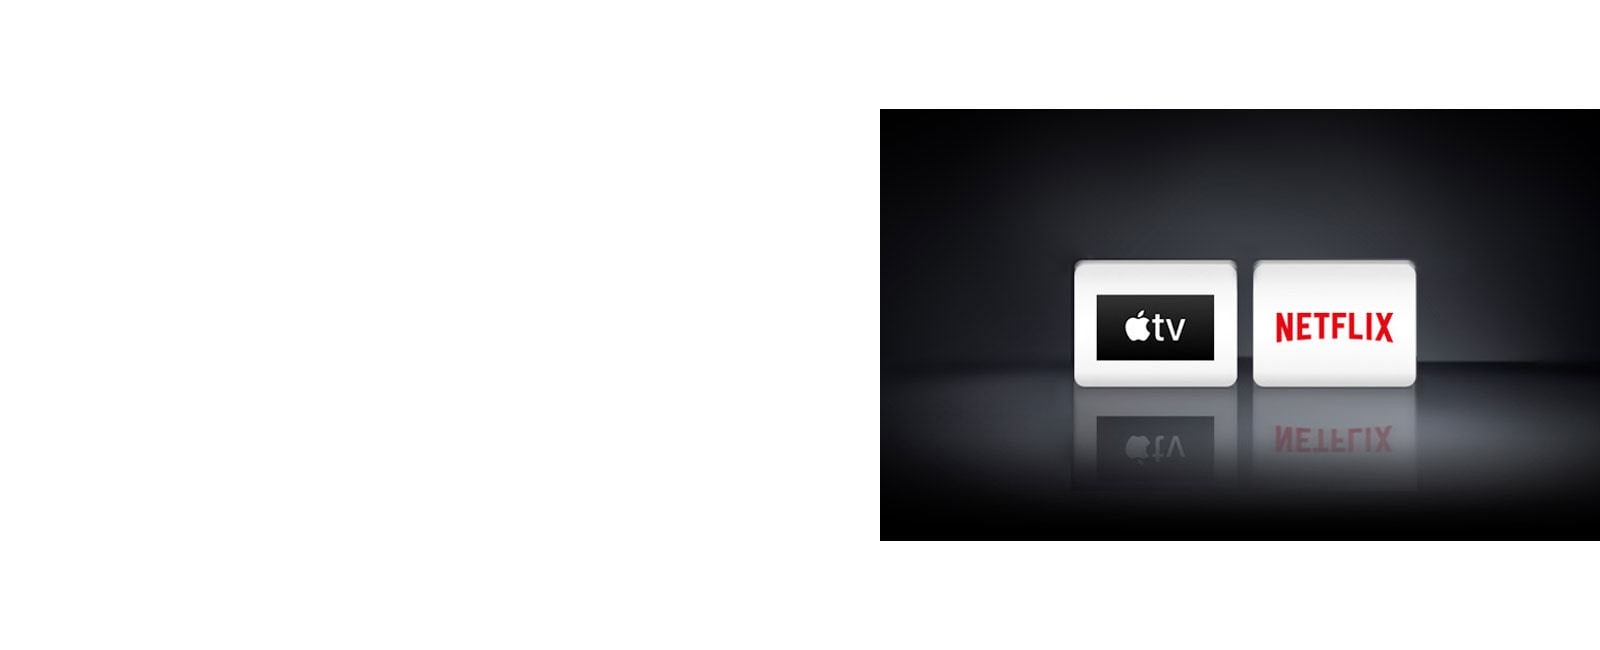 Dva logotipa: Apple TV in Netflix